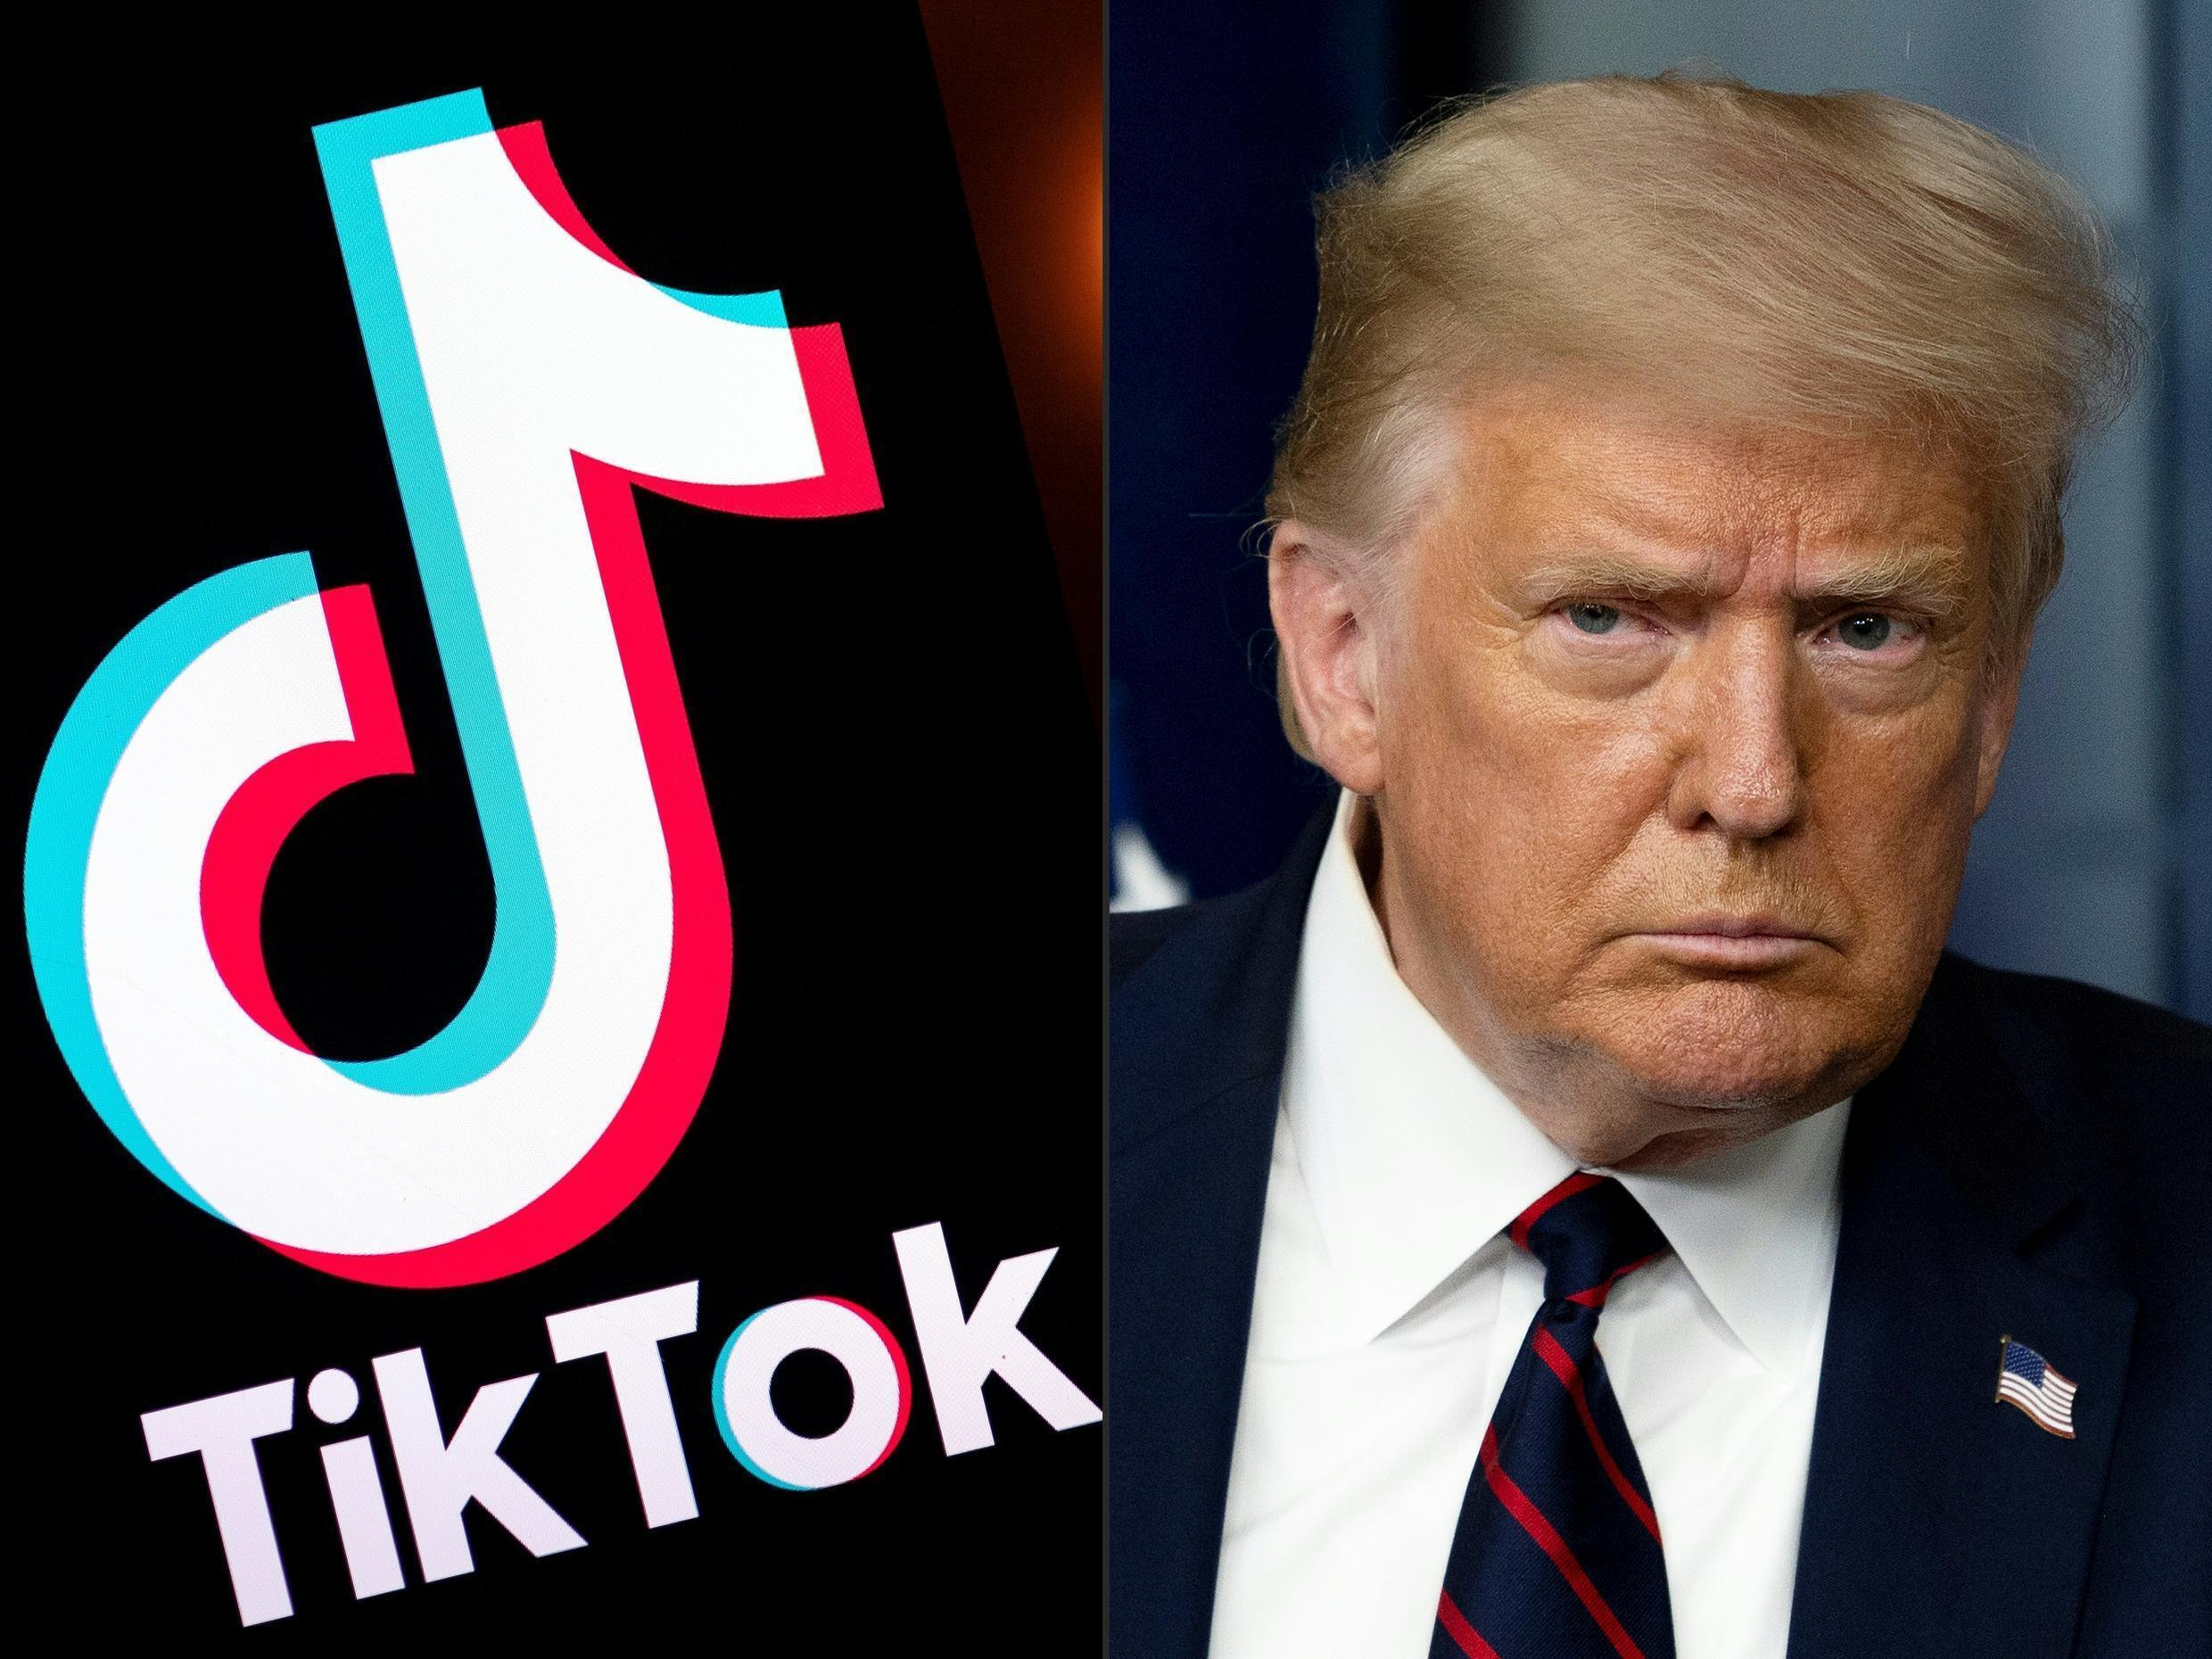 US President Donald Trump argues that popular Chinese-owned social media app TikTok is a threat to national security